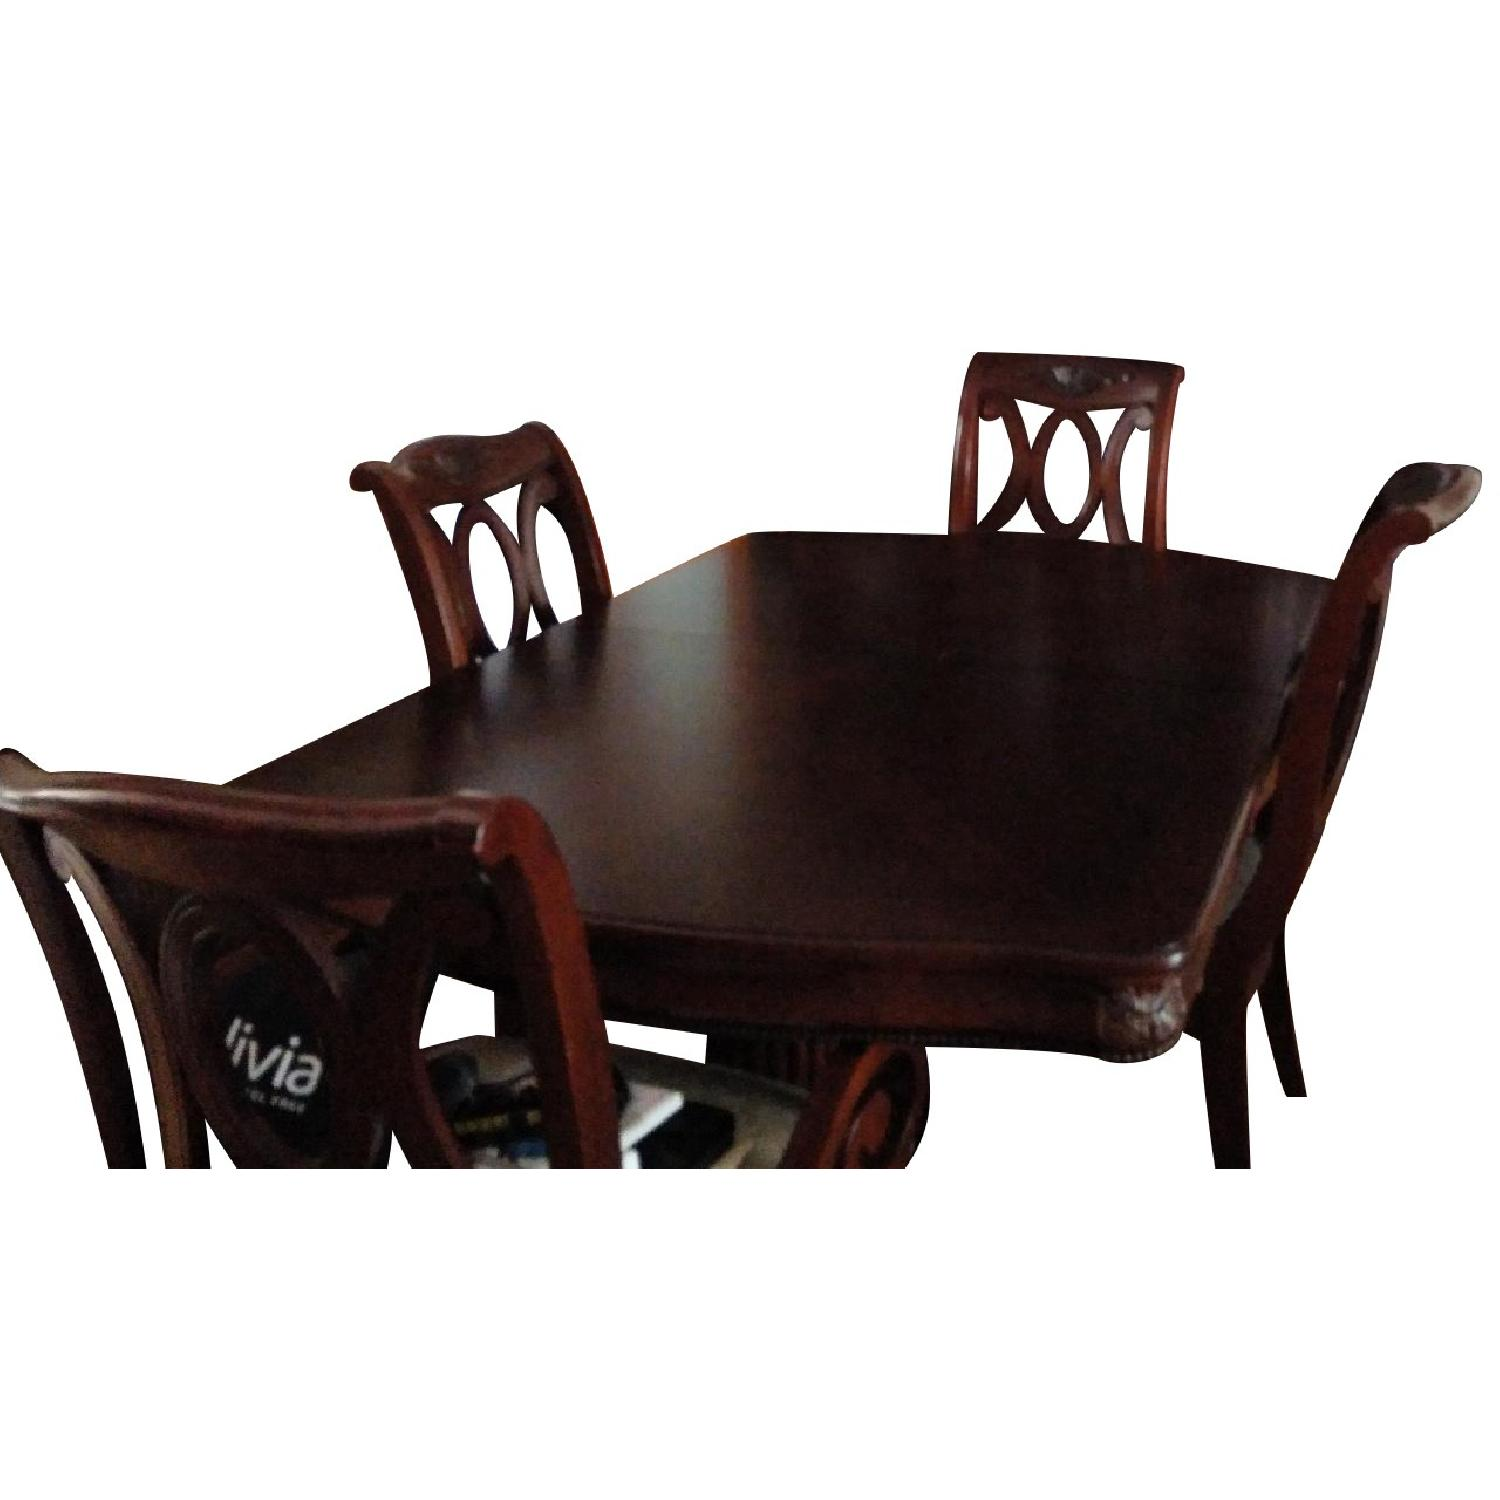 Fortunoff Cherry Wod Dining Table w/ 8 Chairs + China Buffet - image-0